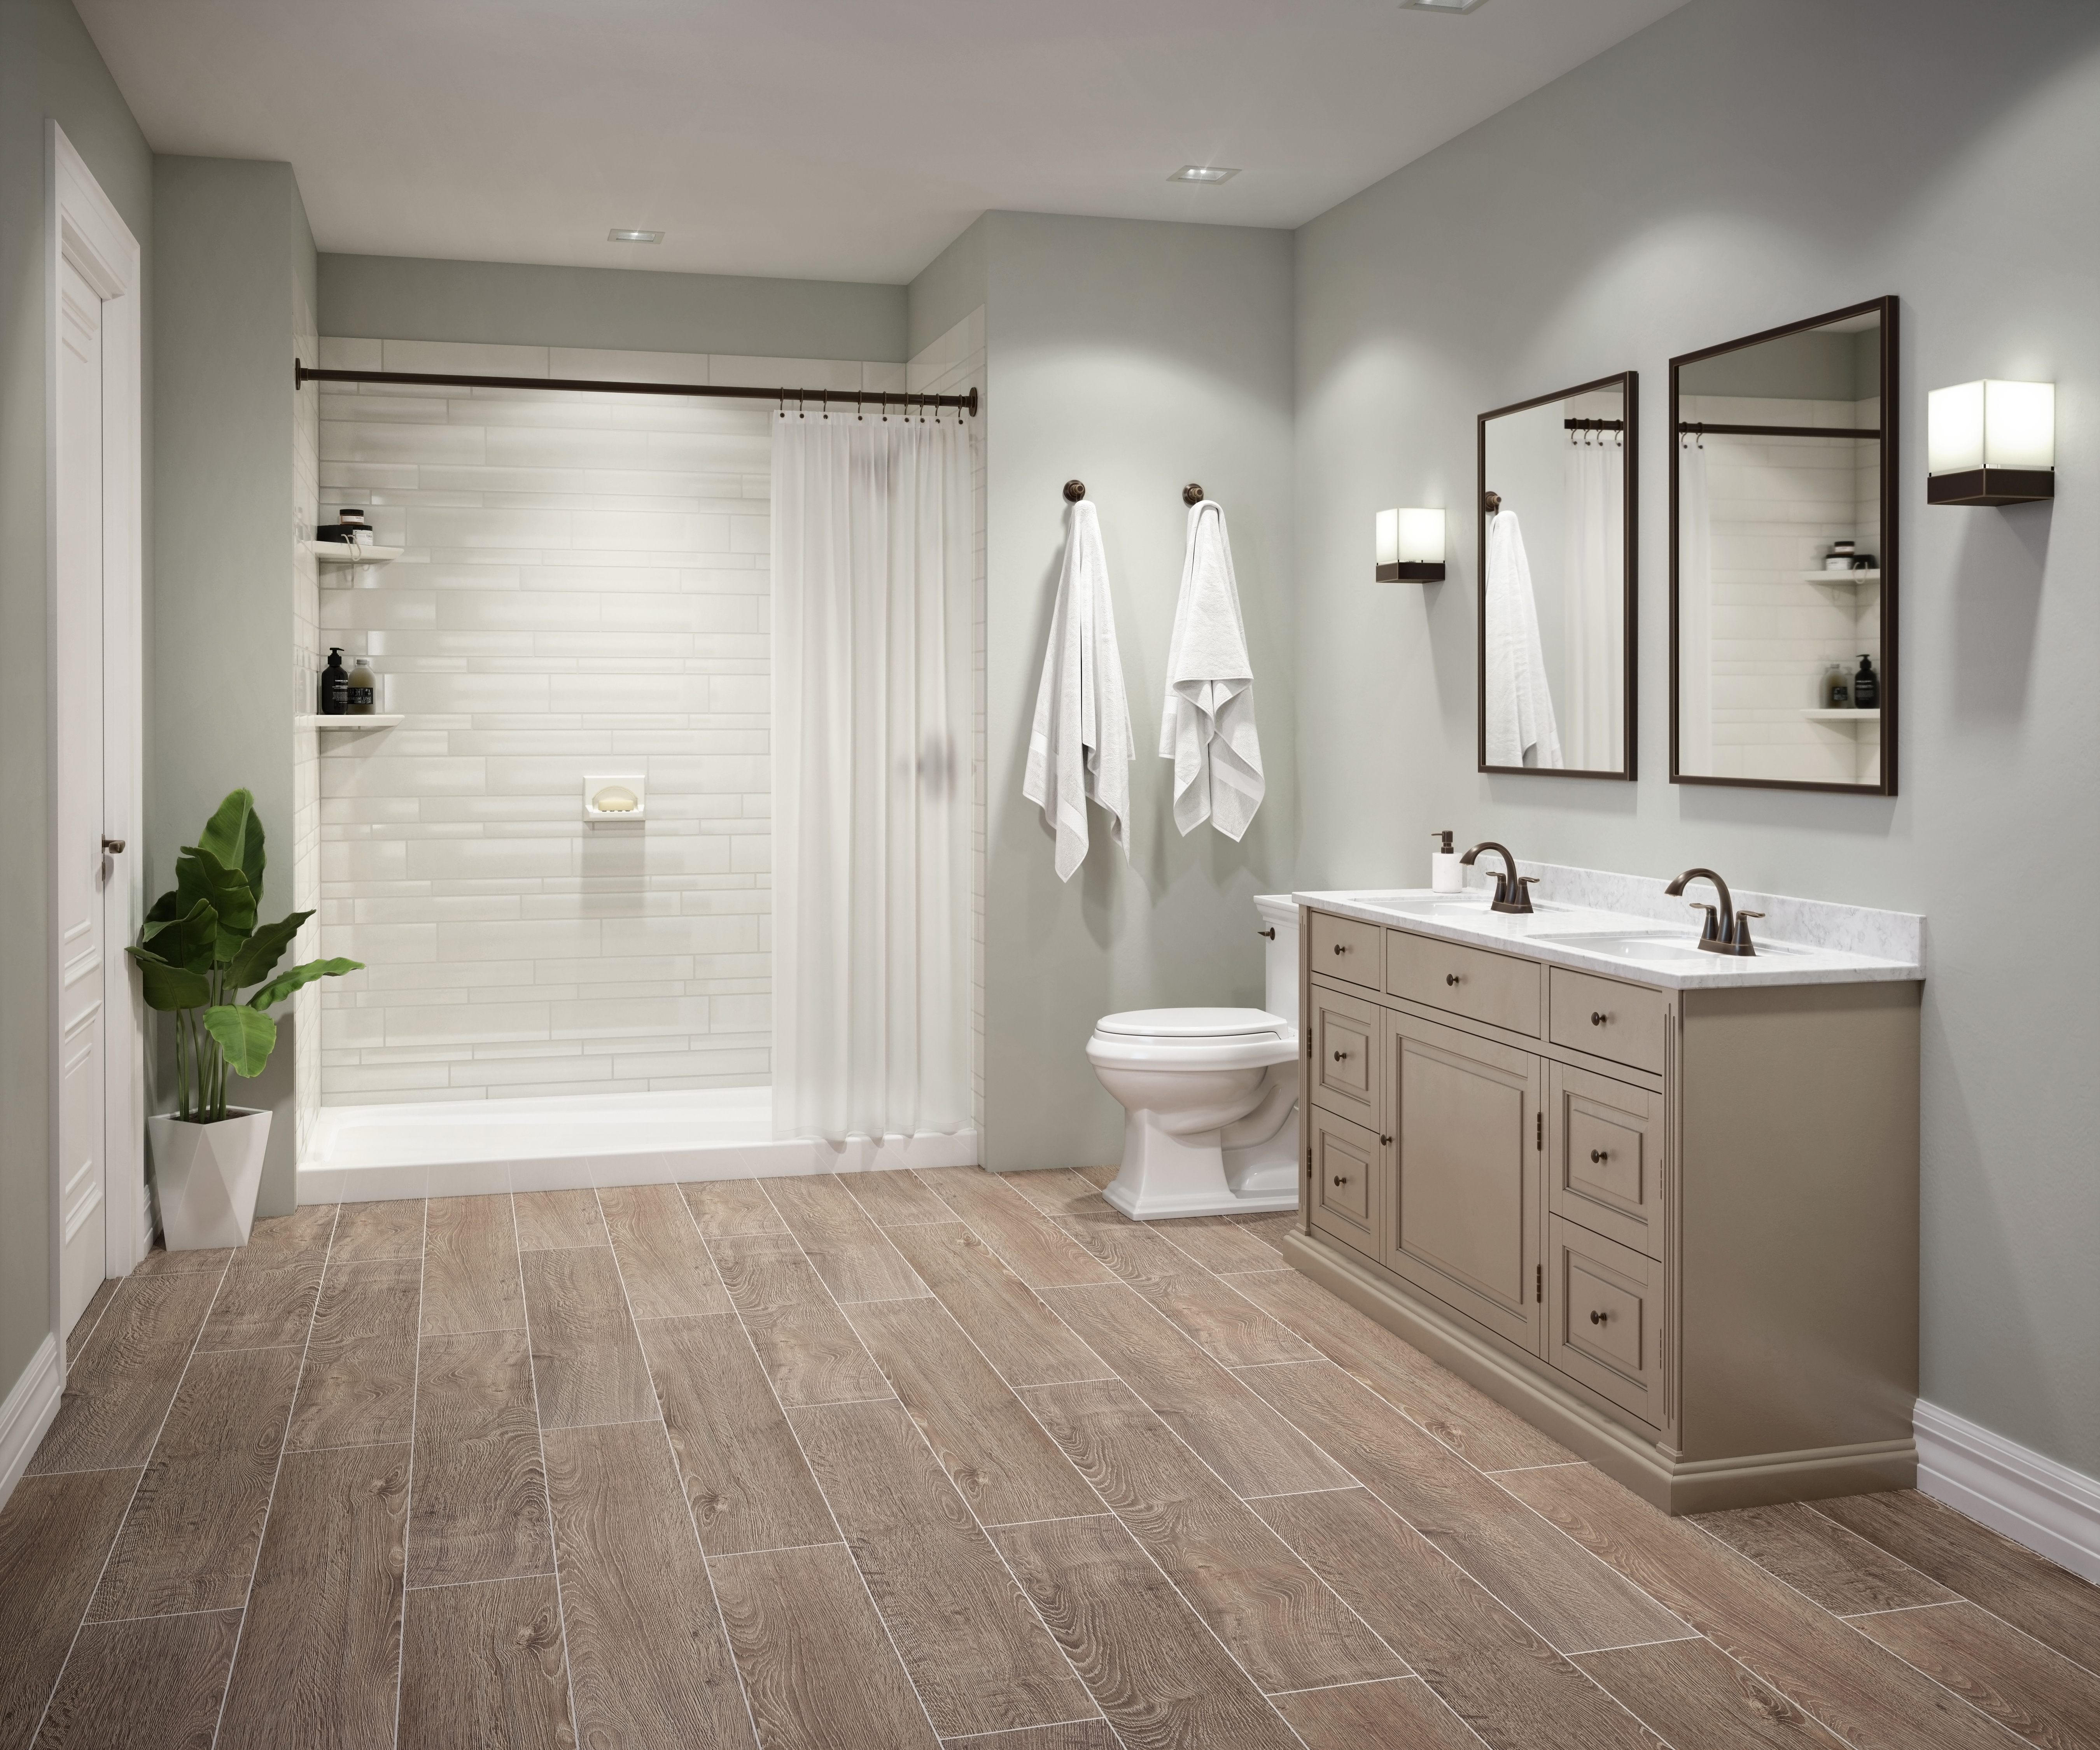 Management was an issue at the time of my employment but the staff came together to get the jobs done to the best of our ability. Best Bath Shower Replacement Contractors West Shore Home